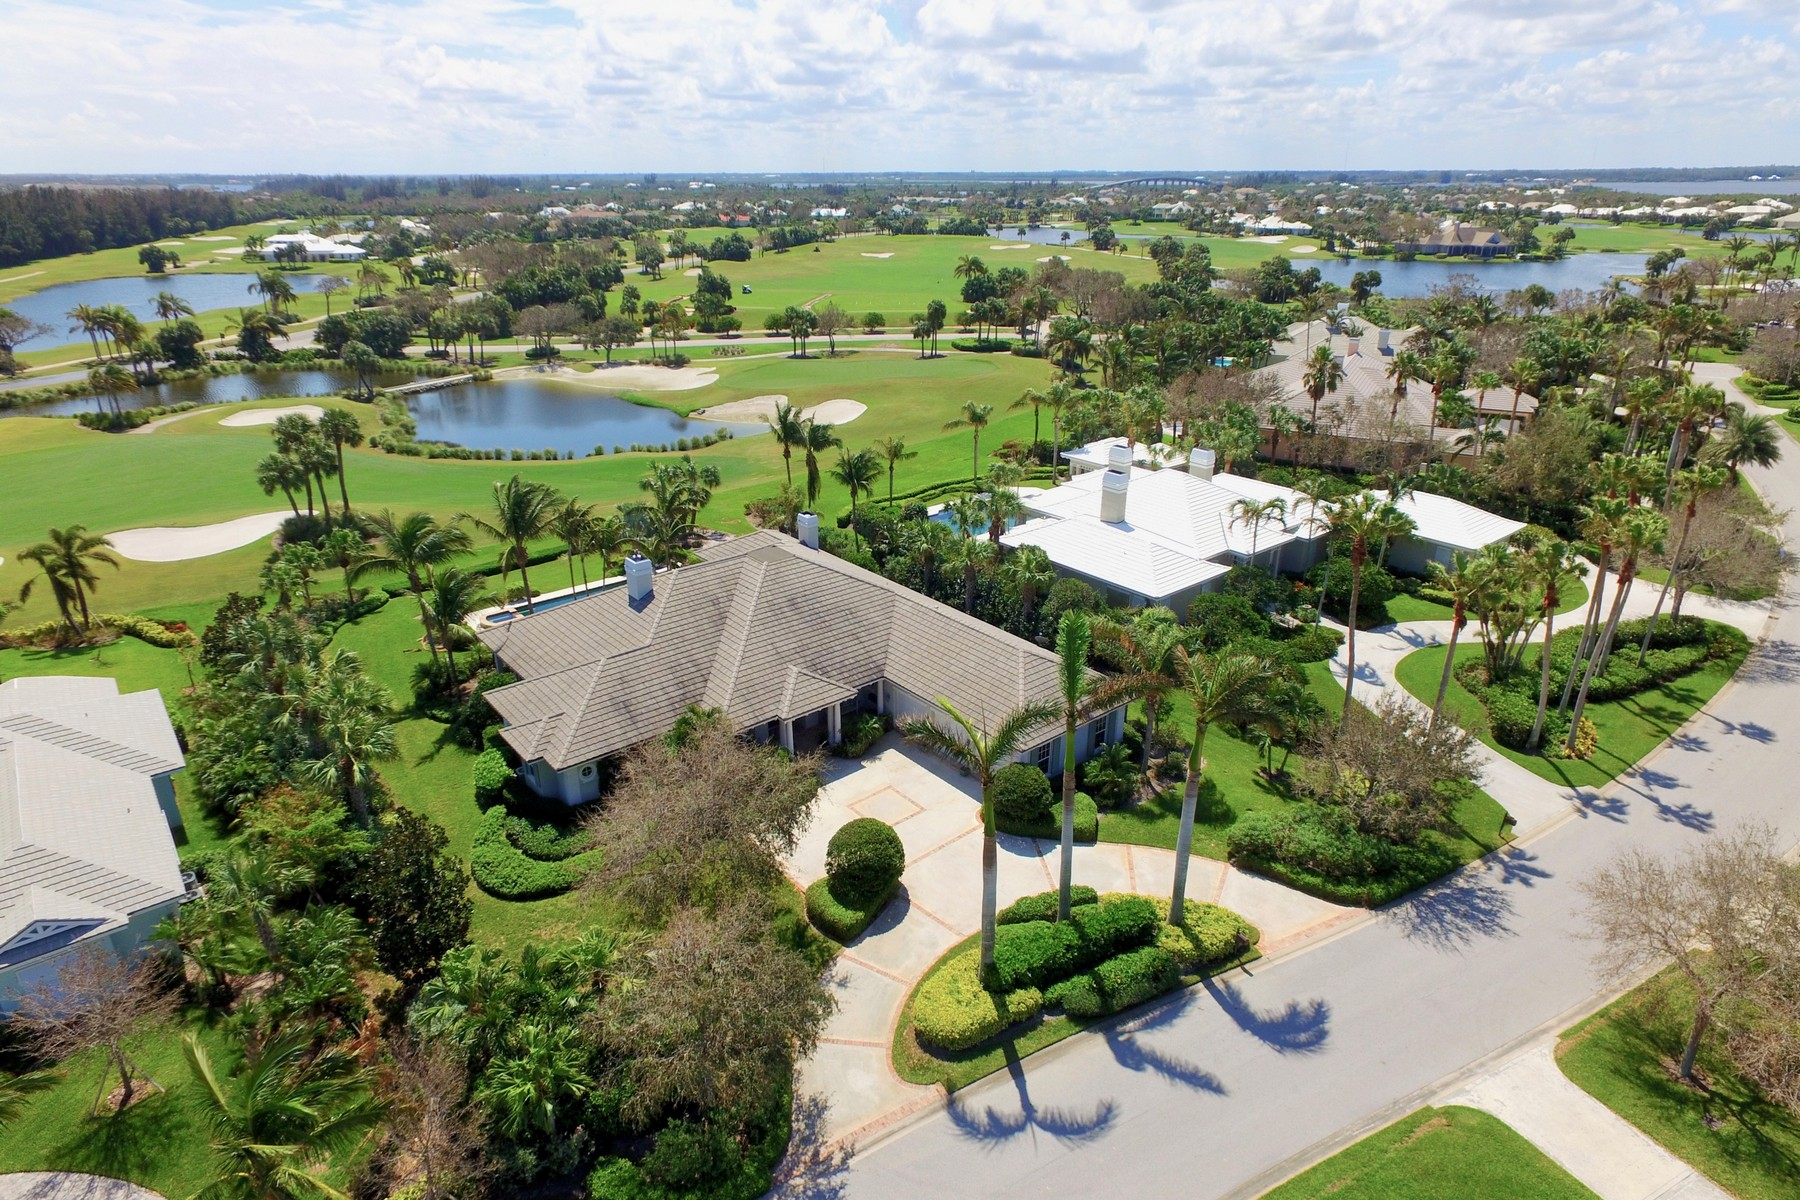 Single Family Home for Sale at Lakefront Home with Endless Golf Views 130 Seaspray Lane Vero Beach, Florida 32963 United States